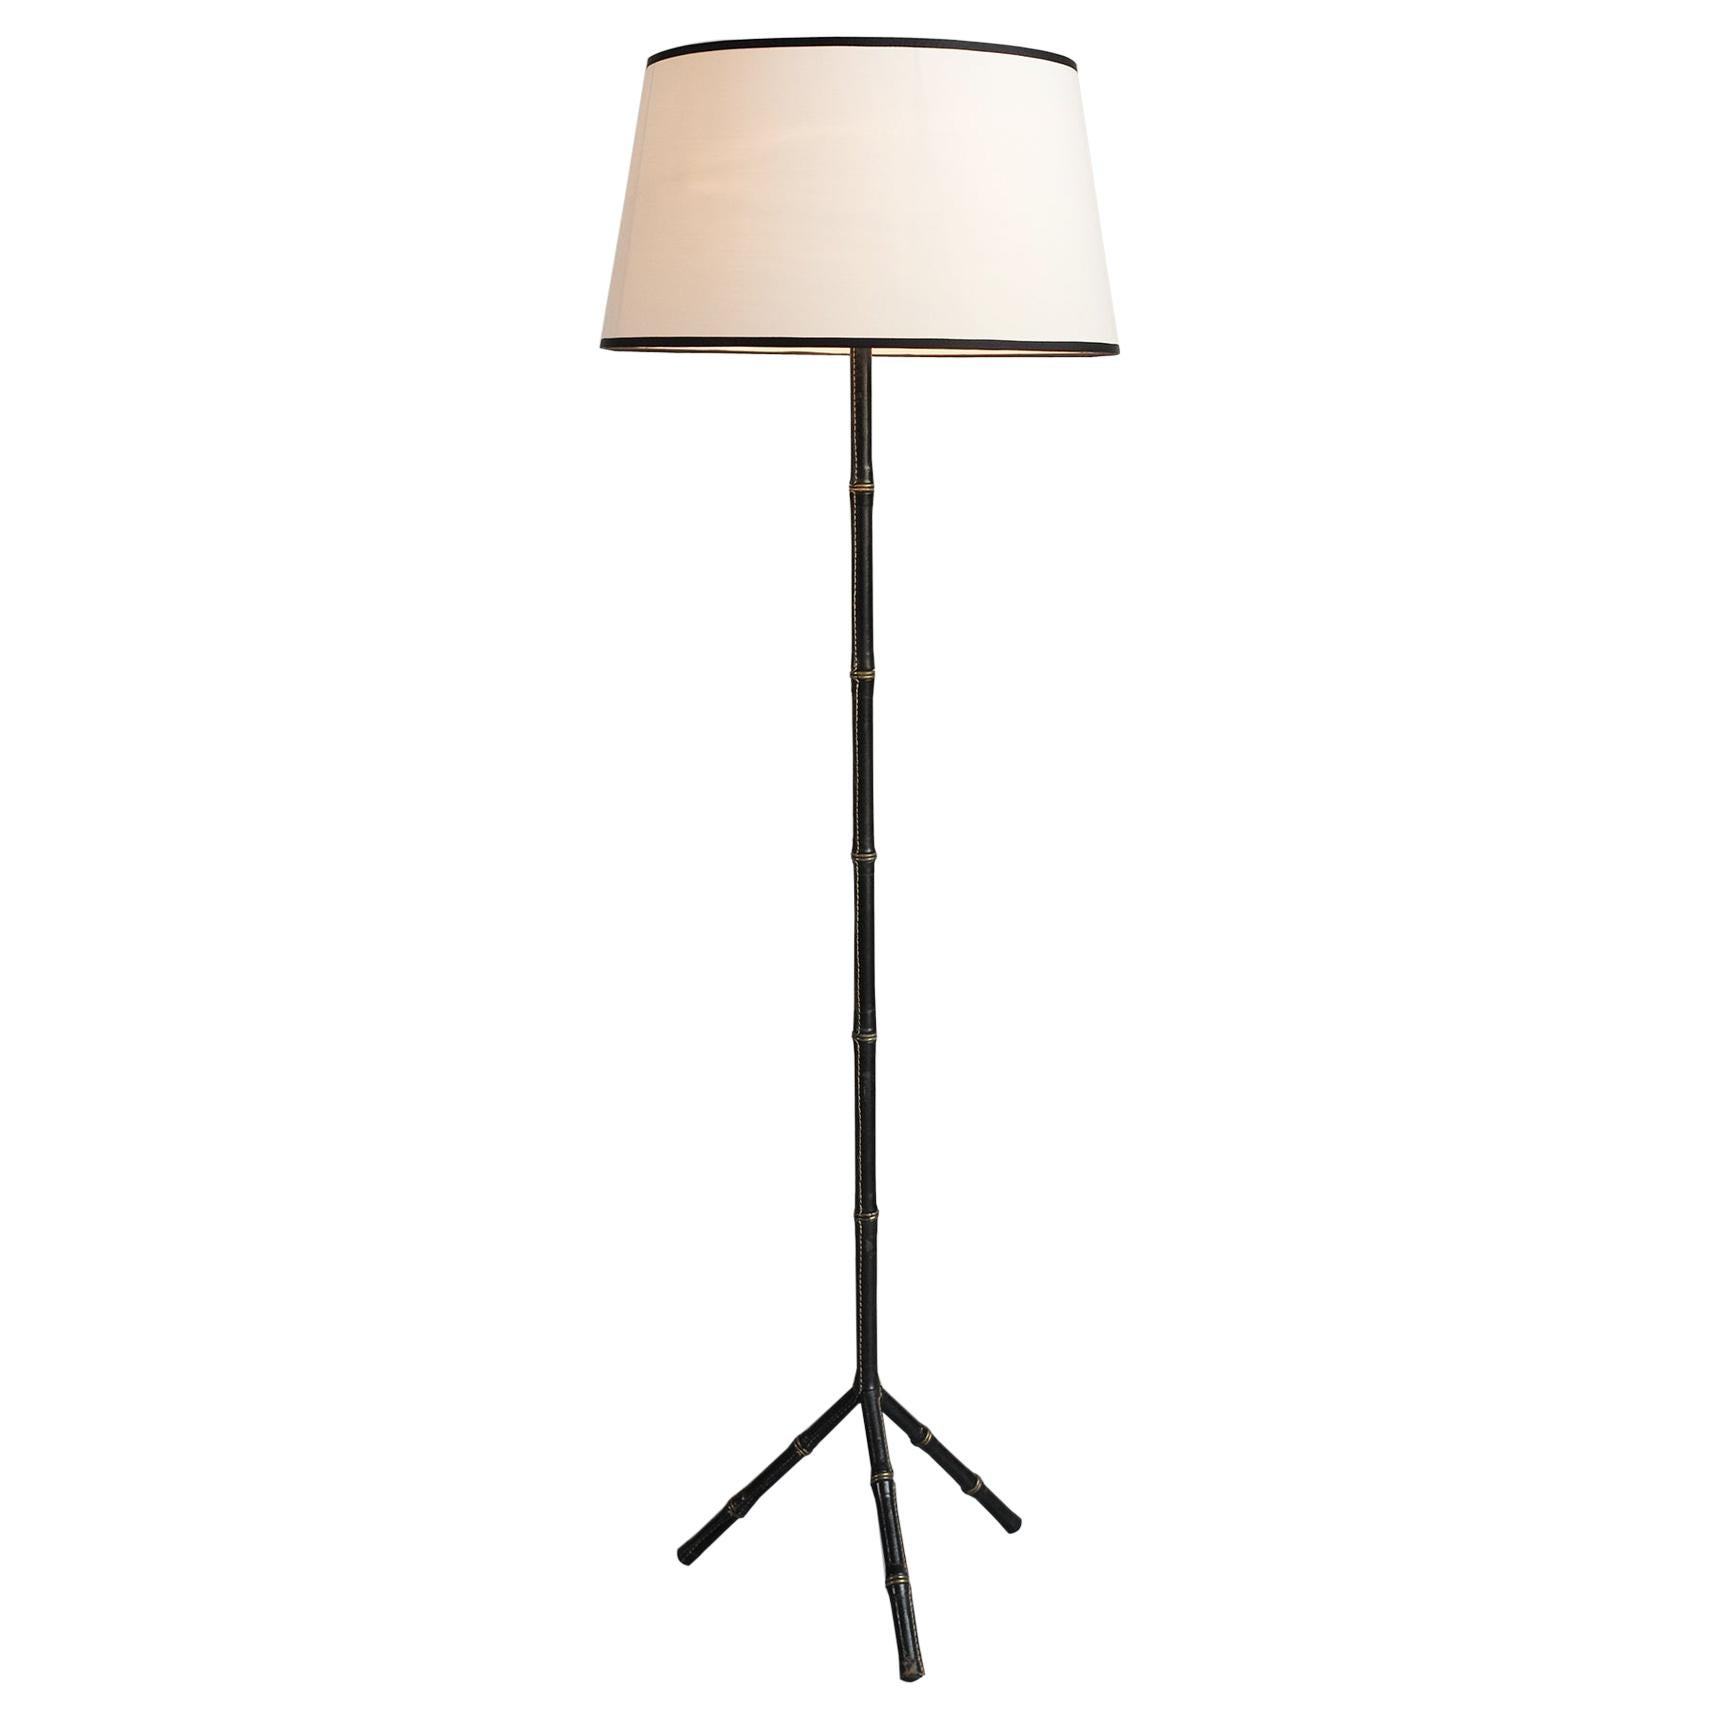 Tripod Floor Lamp by Jacques Adnet, France 1950